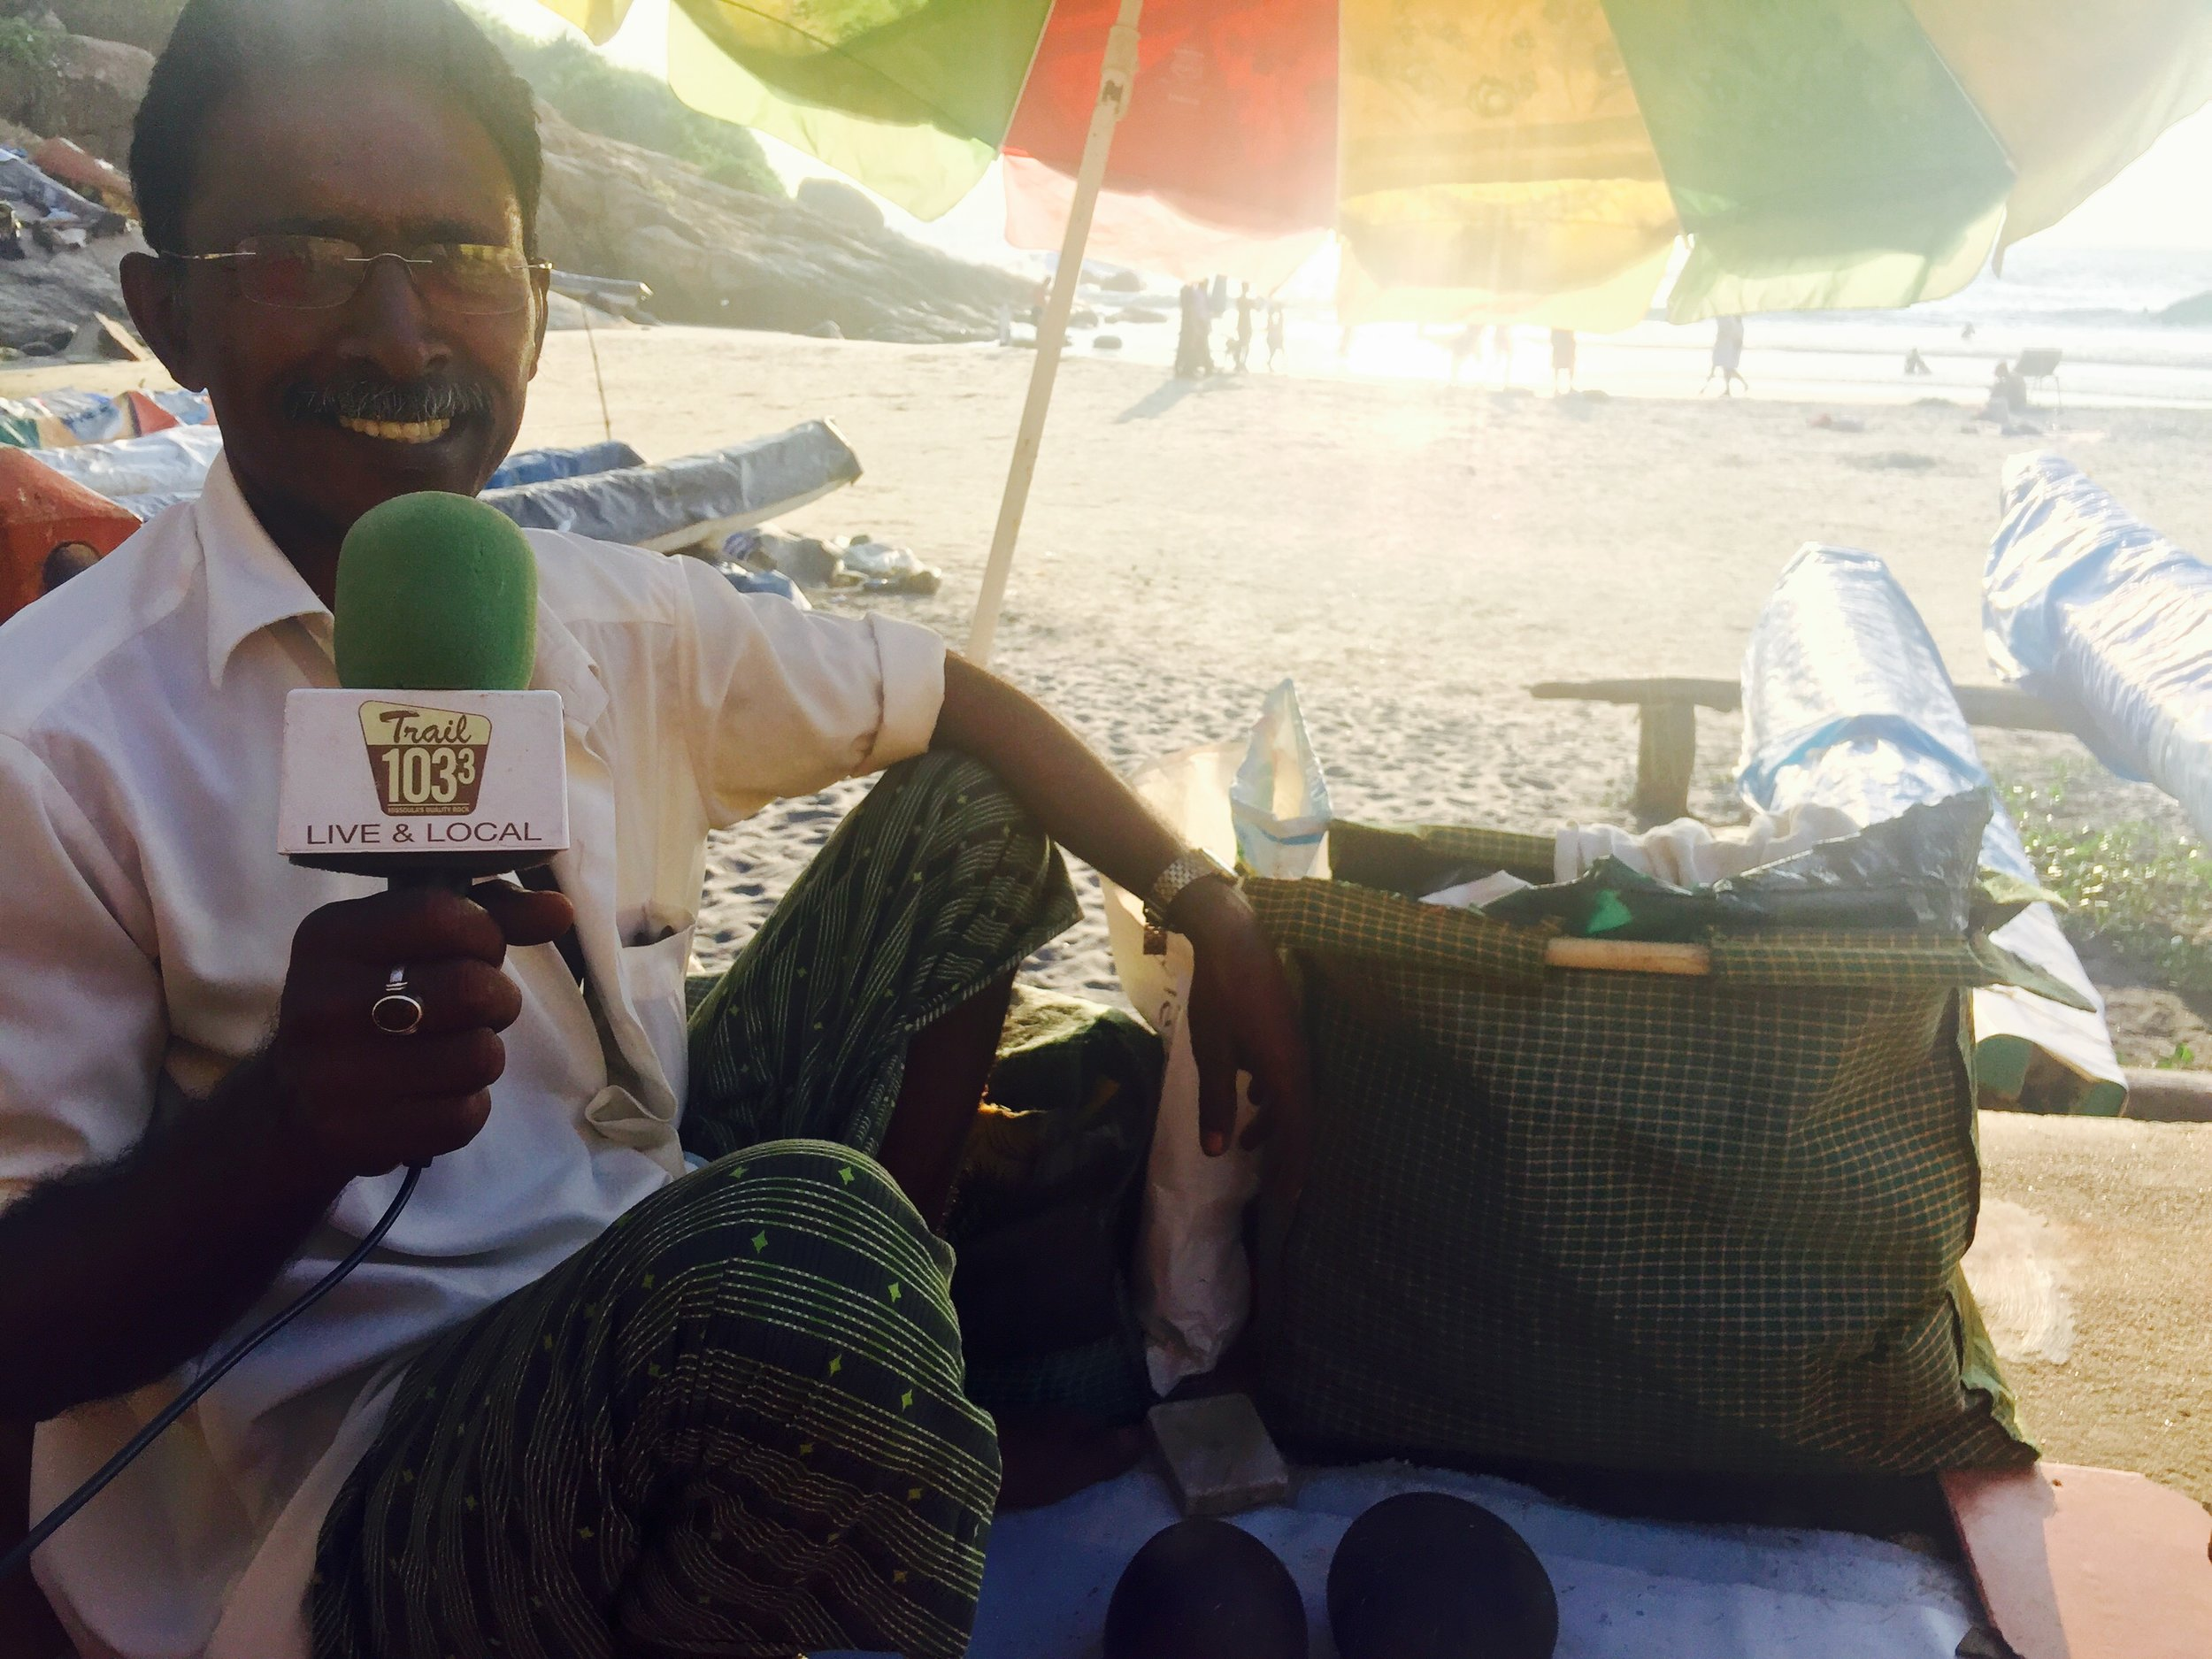 On the edge of the Arabian Sea, Mandela interviews Saleem Ahmed. Saleem is a third generation fisherman who specializes in hand carved coconut artwork.